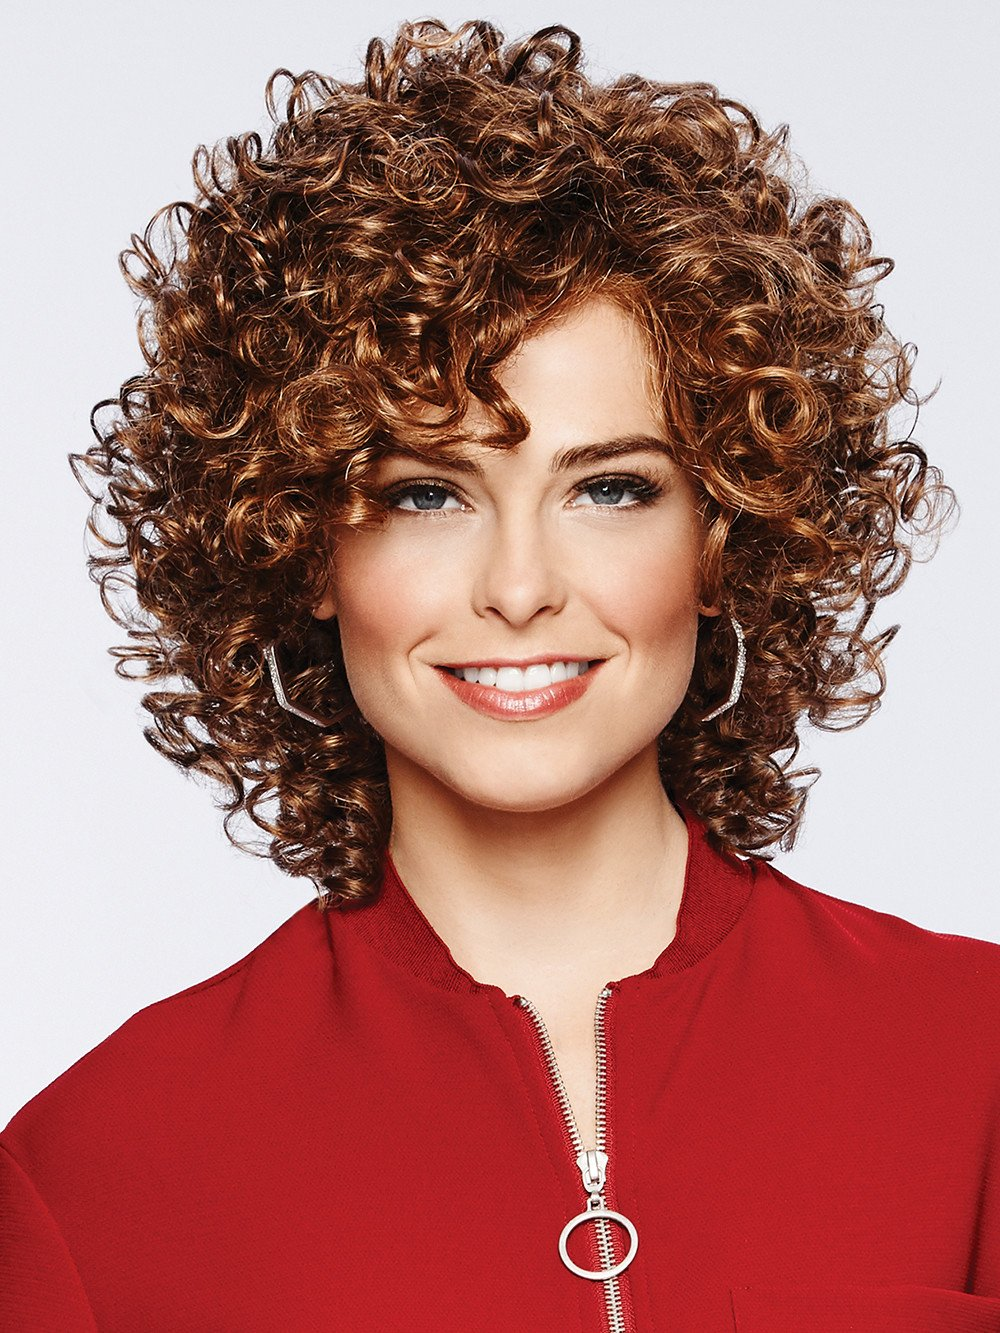 Curl Appeal Wig Smooth Spiral Curls Lace Front Curly Fluff by Eva Gabor Wigs GL 8/29